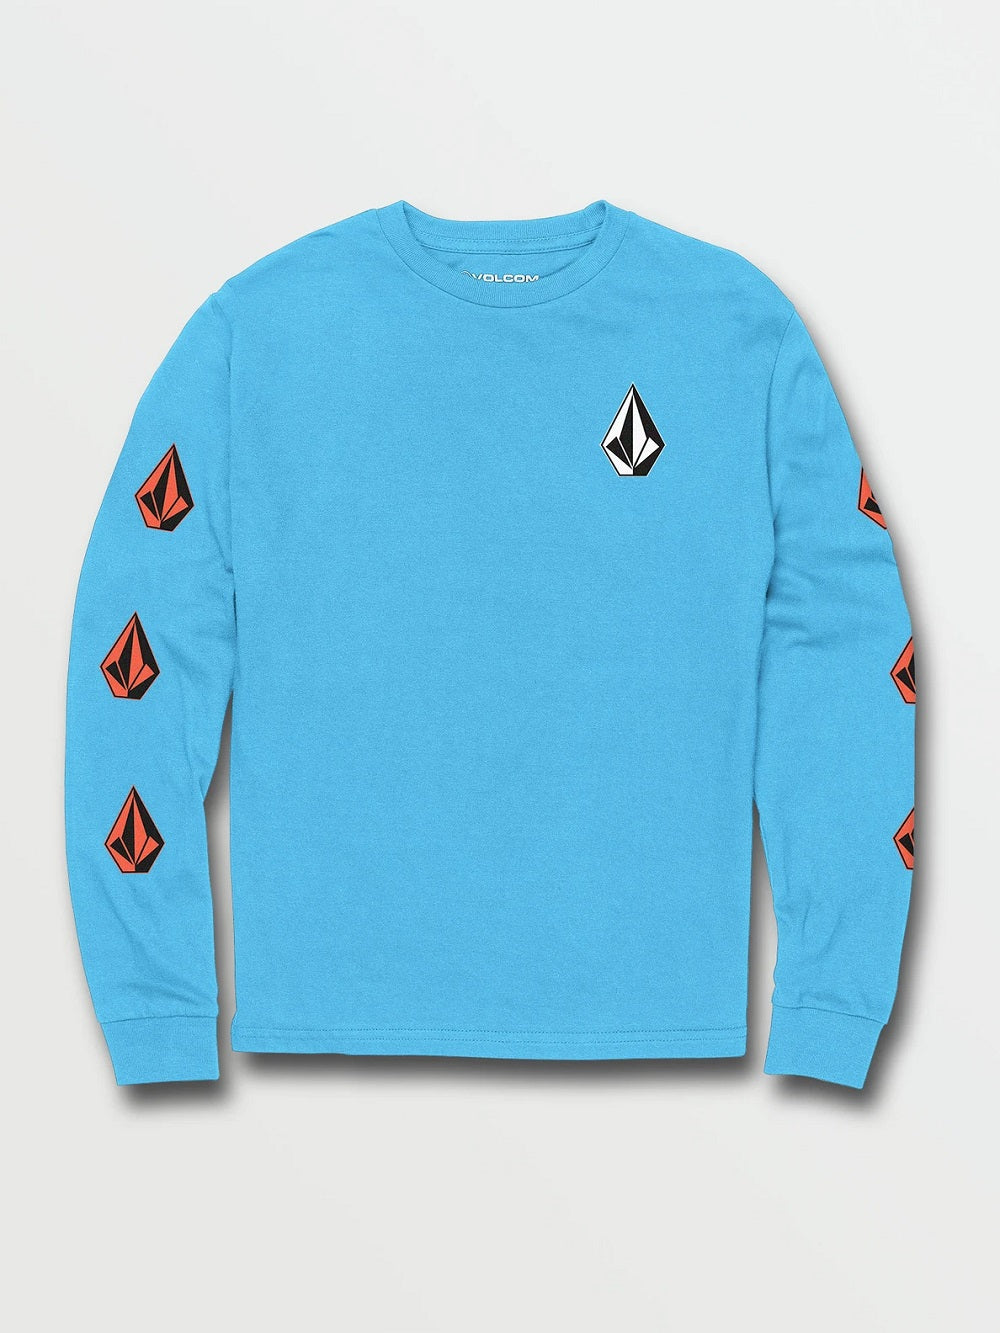 VOLCOM YOUTH DEADLY STONES LS AQUA TSHIRT